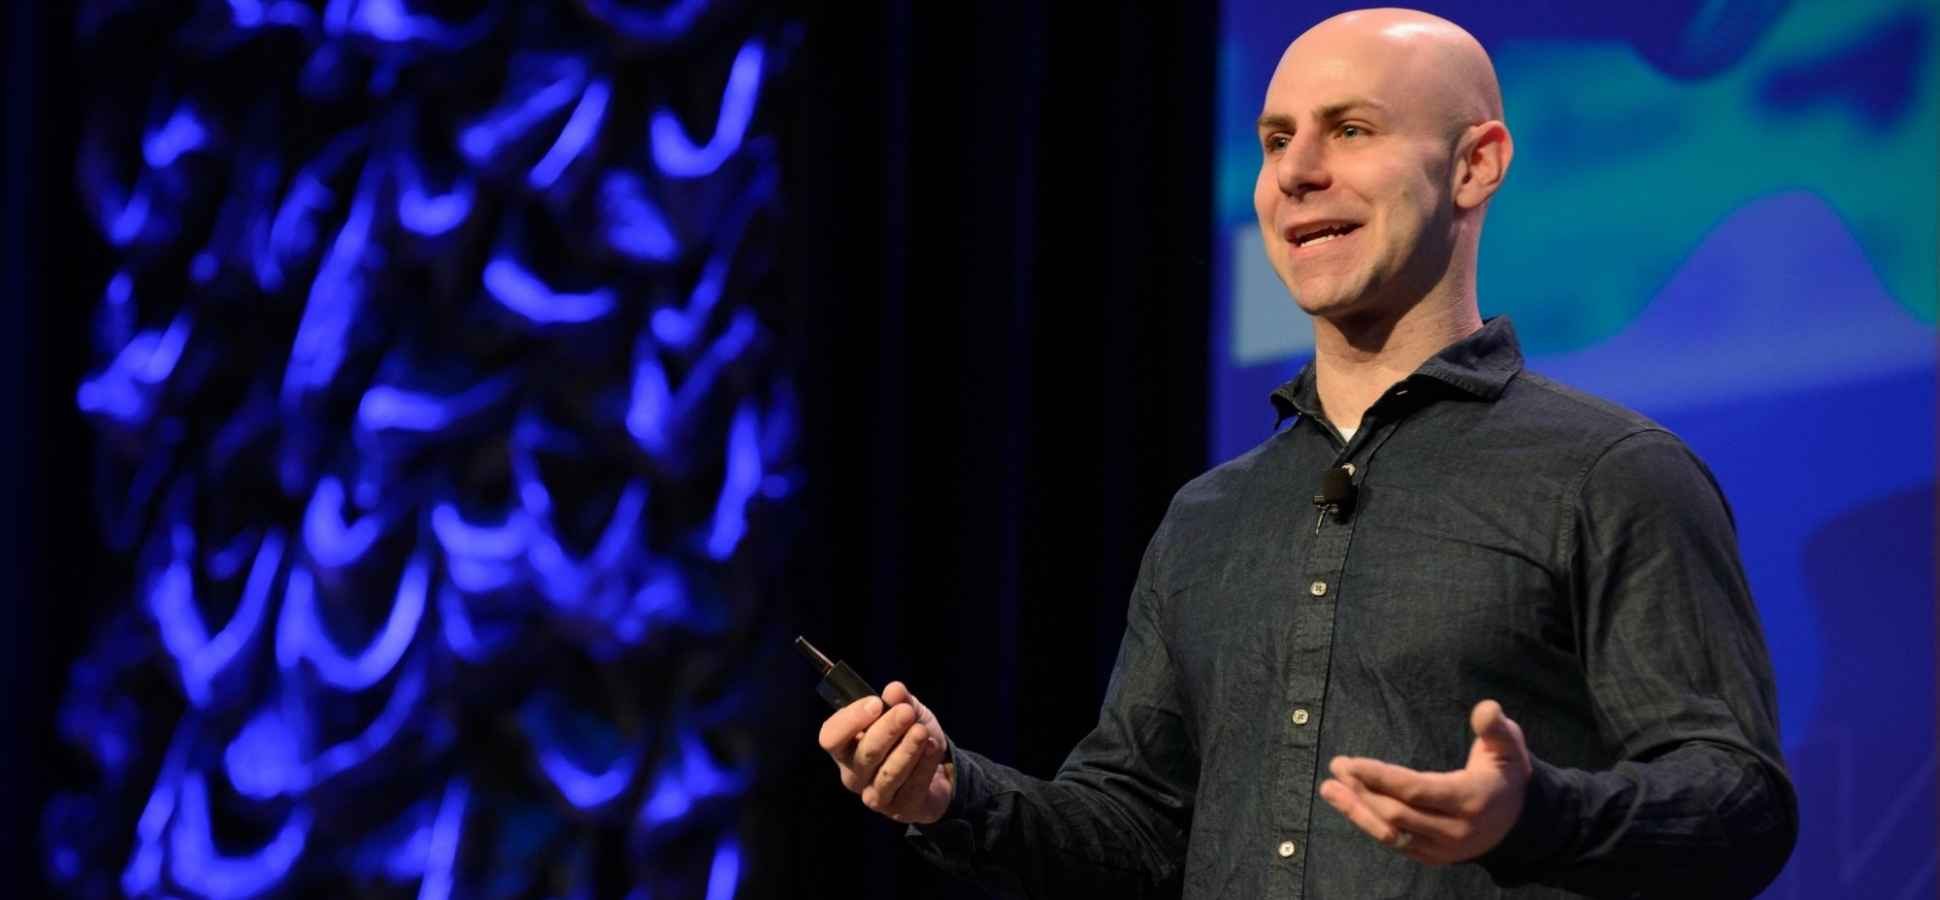 The Best Leaders Have 1 Single Goal in Common, Says Wharton's Adam Grant